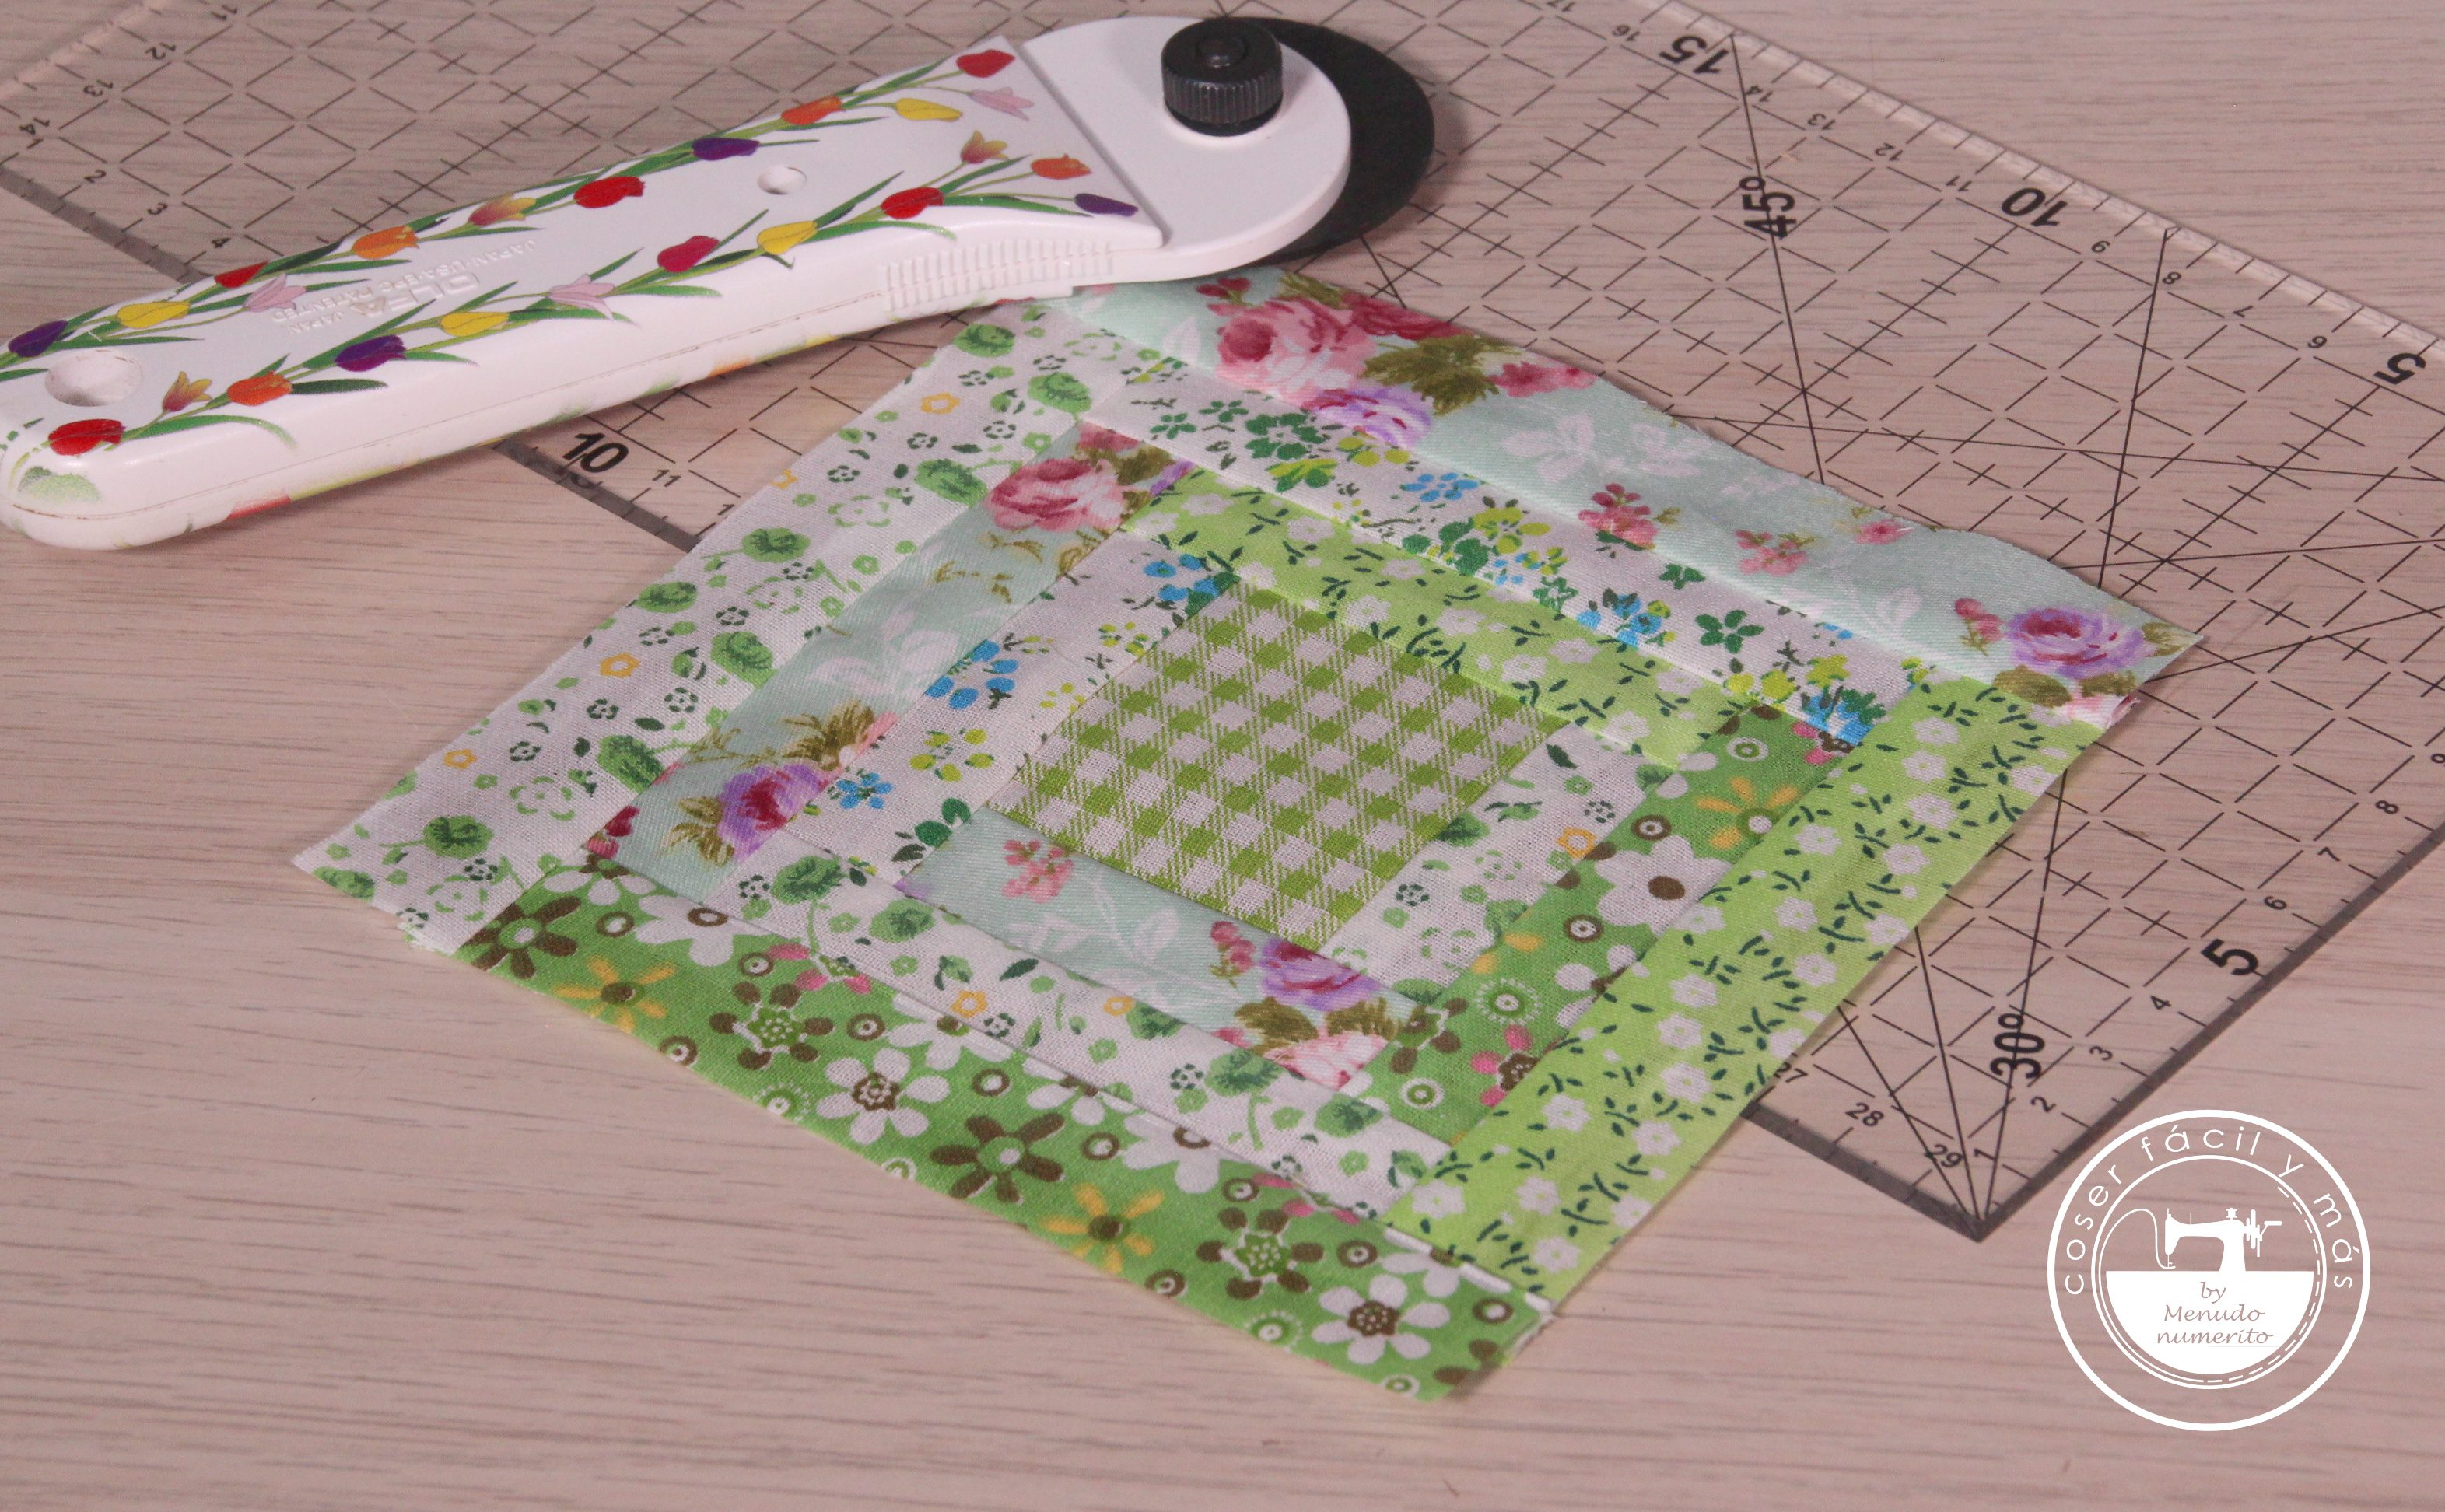 log cabin coser facil menudo numerito patchwork blogs de costura